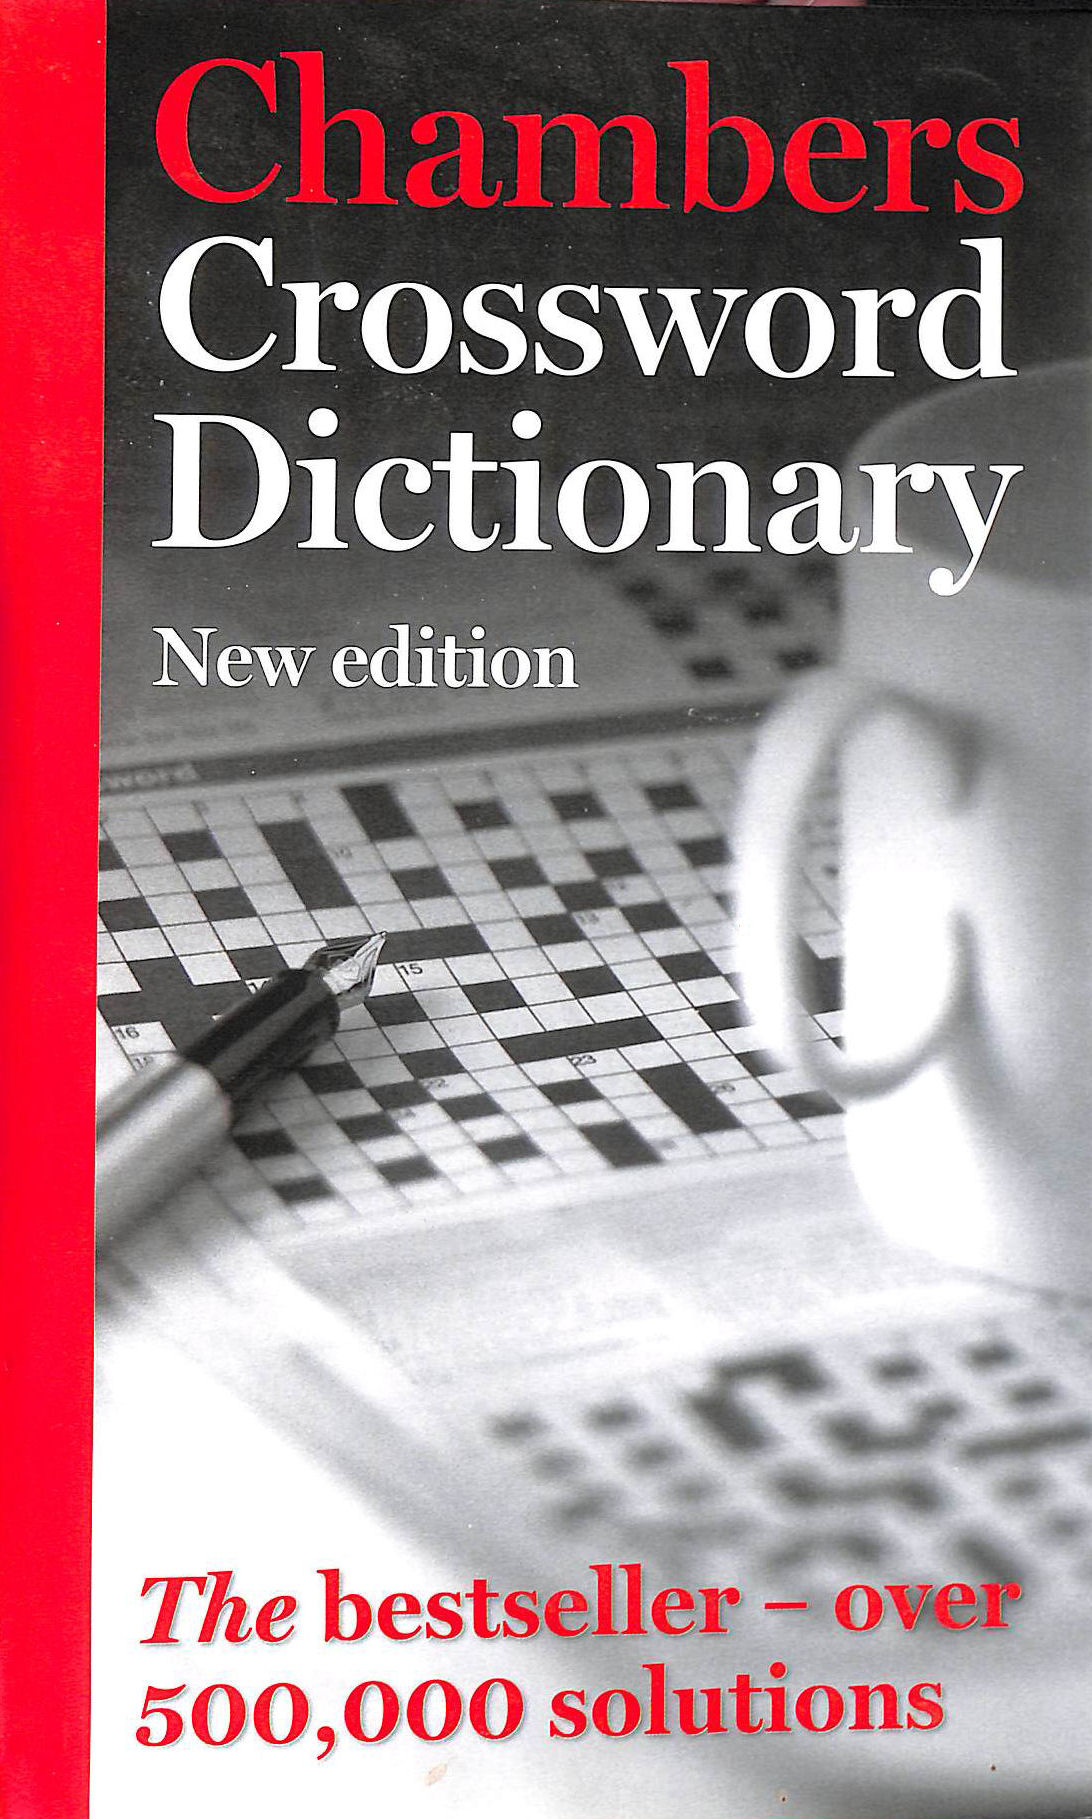 Image for Chambers Crossword Dictionary, 3rd edition